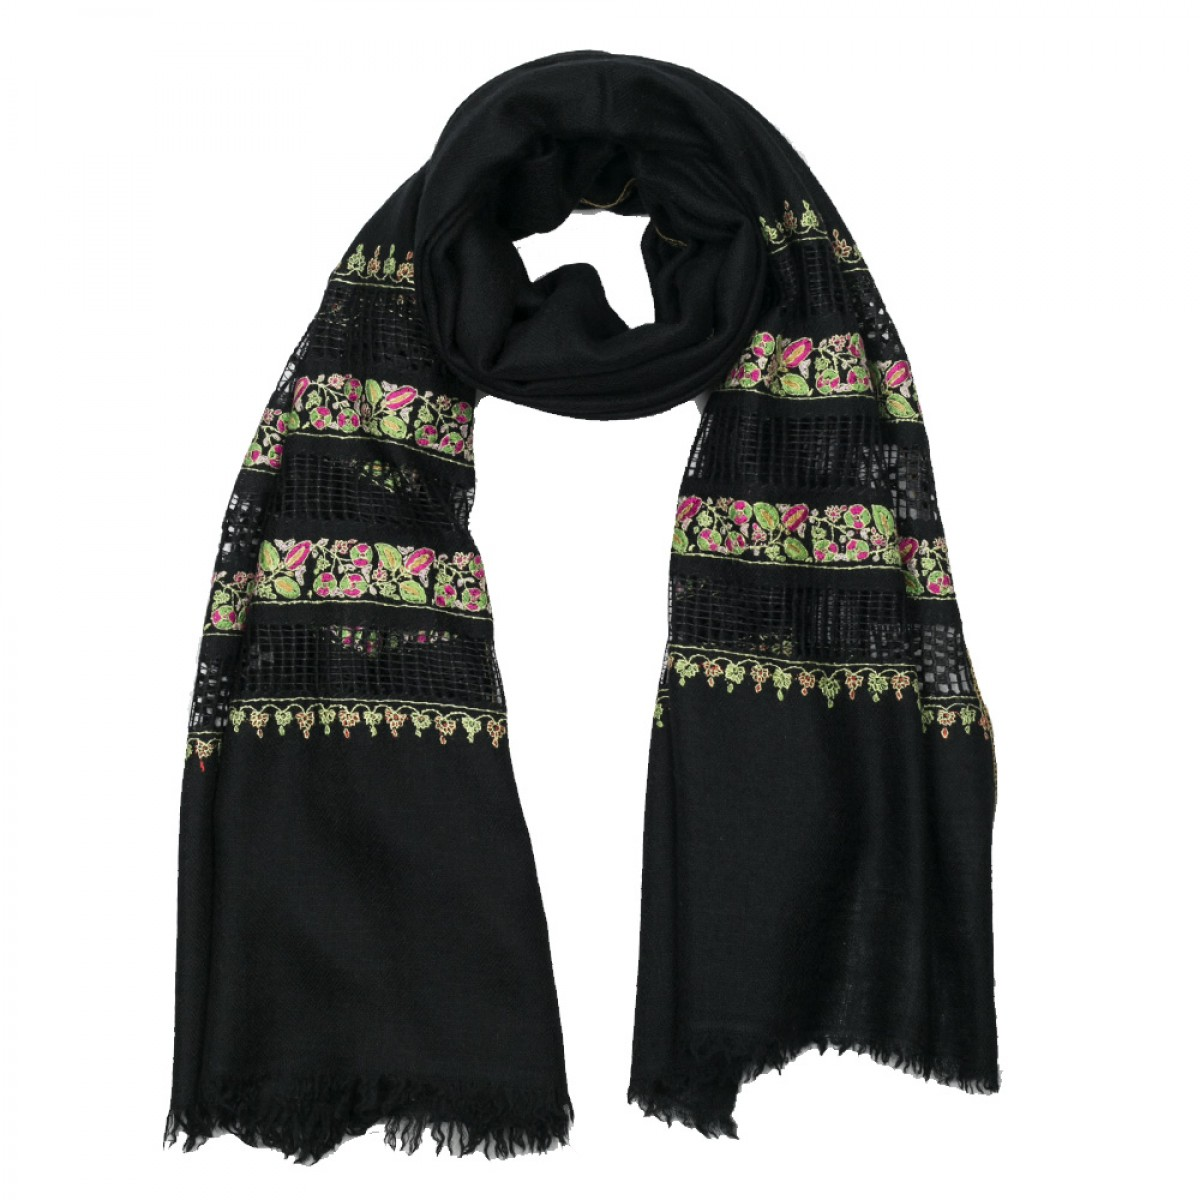 Embroidered Pashmina Stole - Black